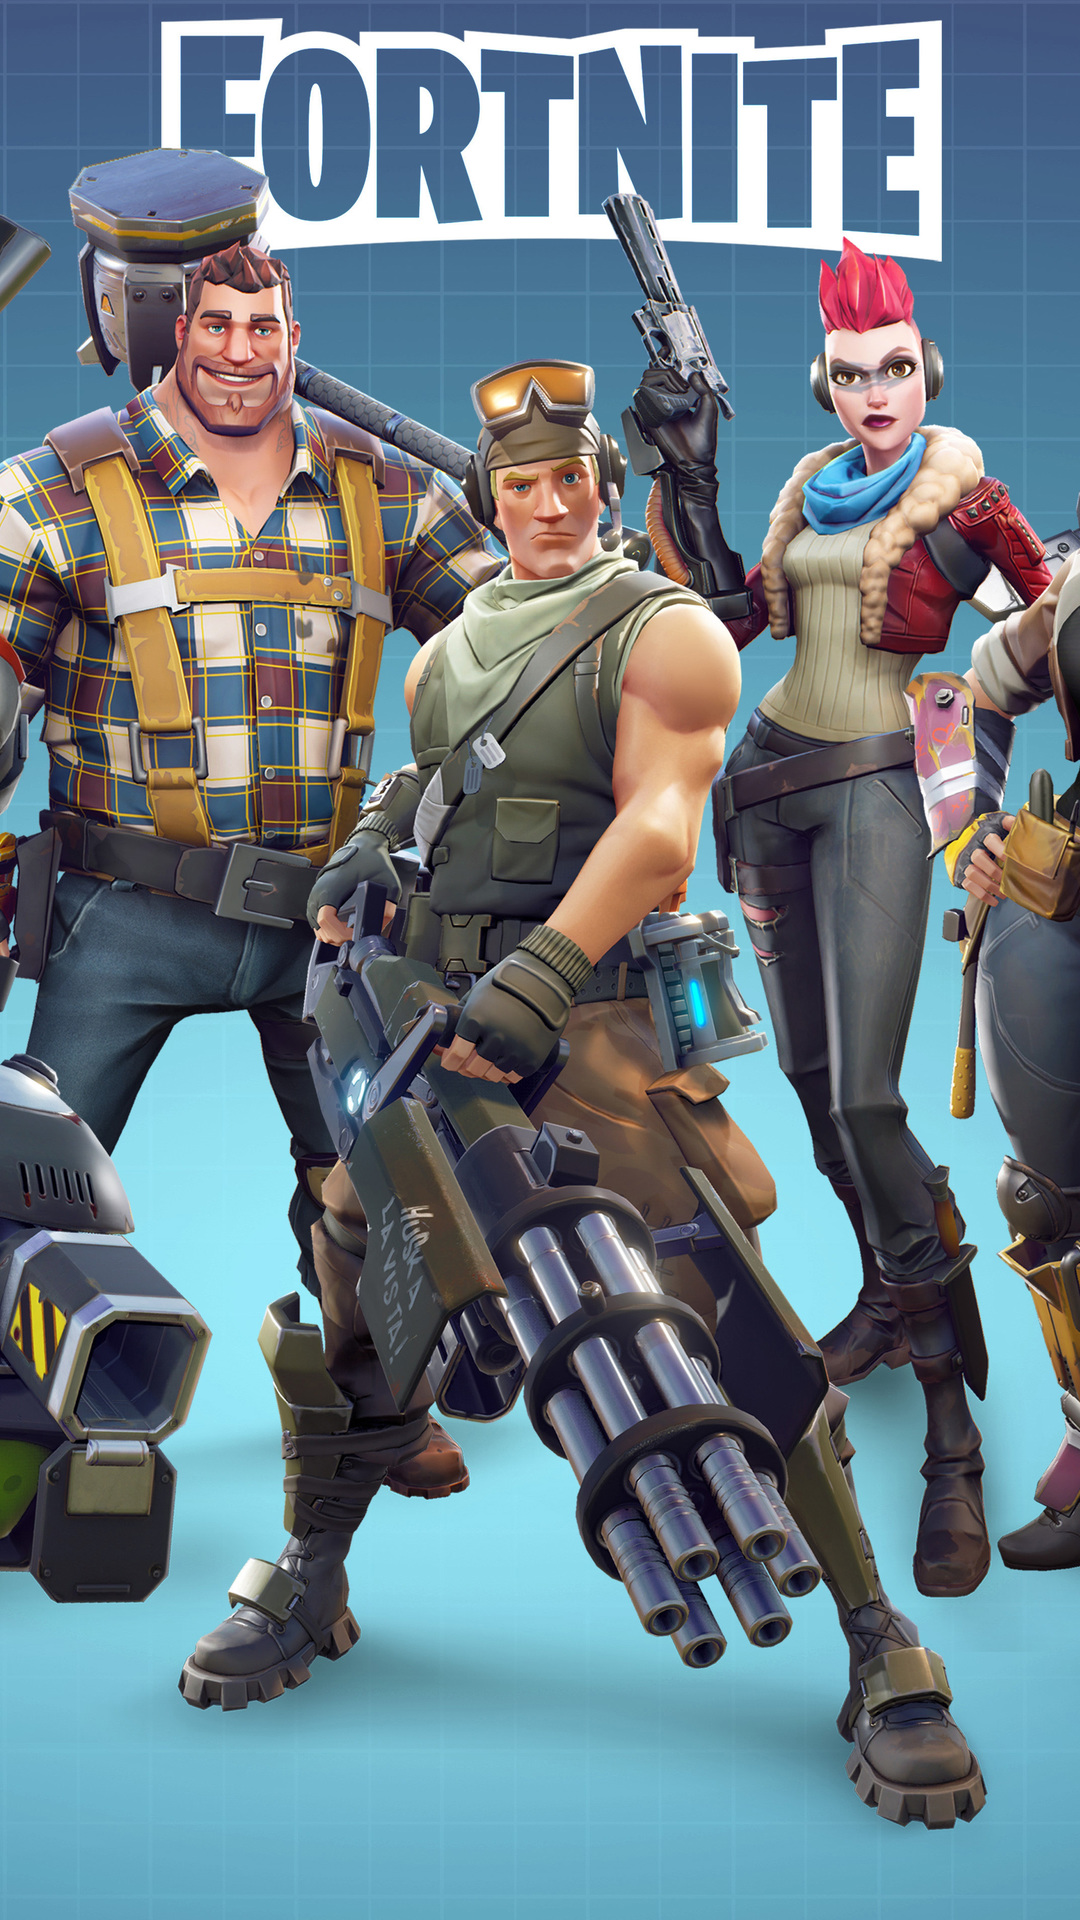 iPhone wallpaper fortnite1 Fortnite